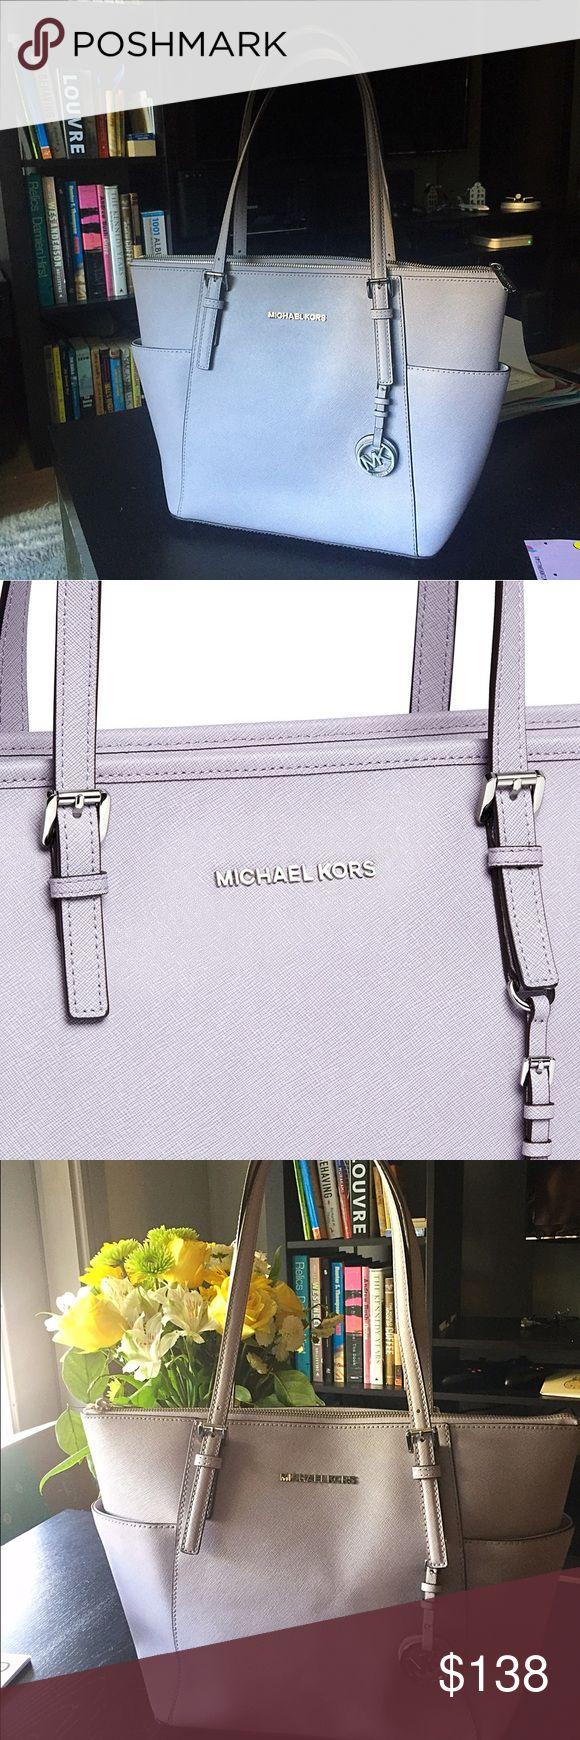 Michael Kors Saffiano Leather Lilac Tote 💜 Beautiful lilac ( light purple ) tote perfect for any season! Has lovely MK logo lining with tons of pockets for organizing. Sadly since we recently moved it somehow got small discoloration on the bottom and scratch on the clasp on the back side of the bag. (pcs attached) However as you can see from pictures those are not very visible. Got it is as a present and really hope to find a lovely new home for her 💞 firm on the price Michael Kors Bags…